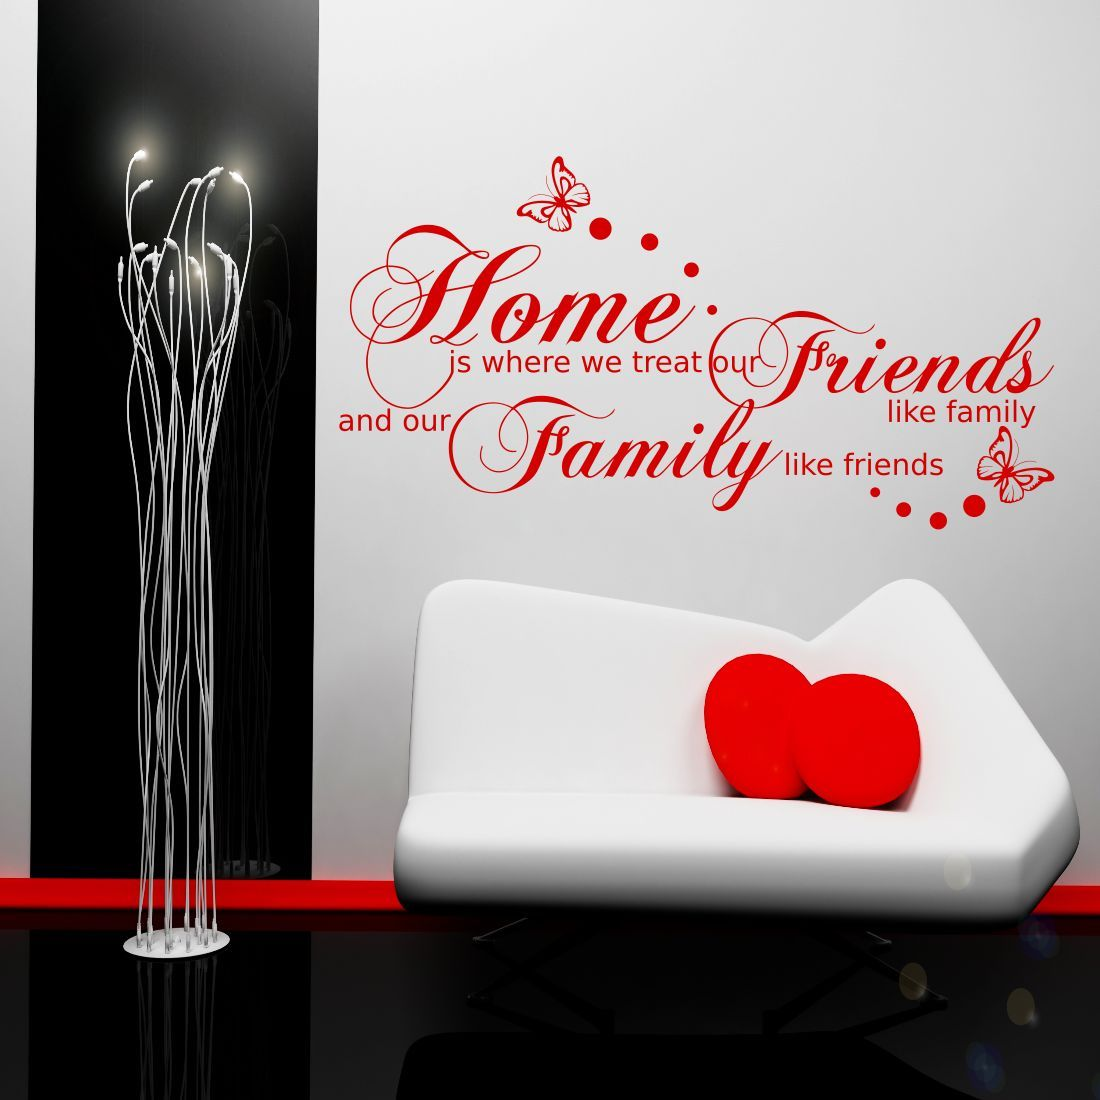 FAMILY FRIENDS HOME QUOTE WALL ART STICKER TRANSFER